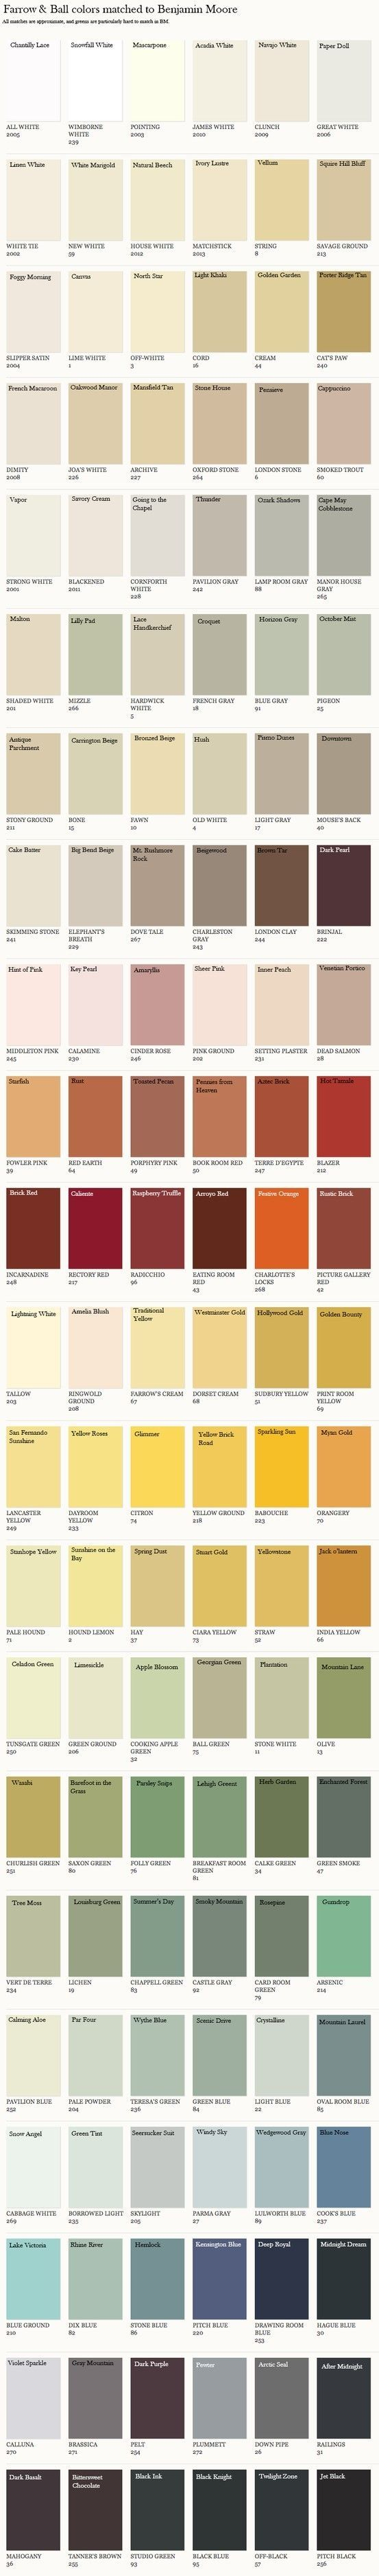 22 best benjamin moore 39 s perfect grey images on pinterest Benjamin moore color chart interior